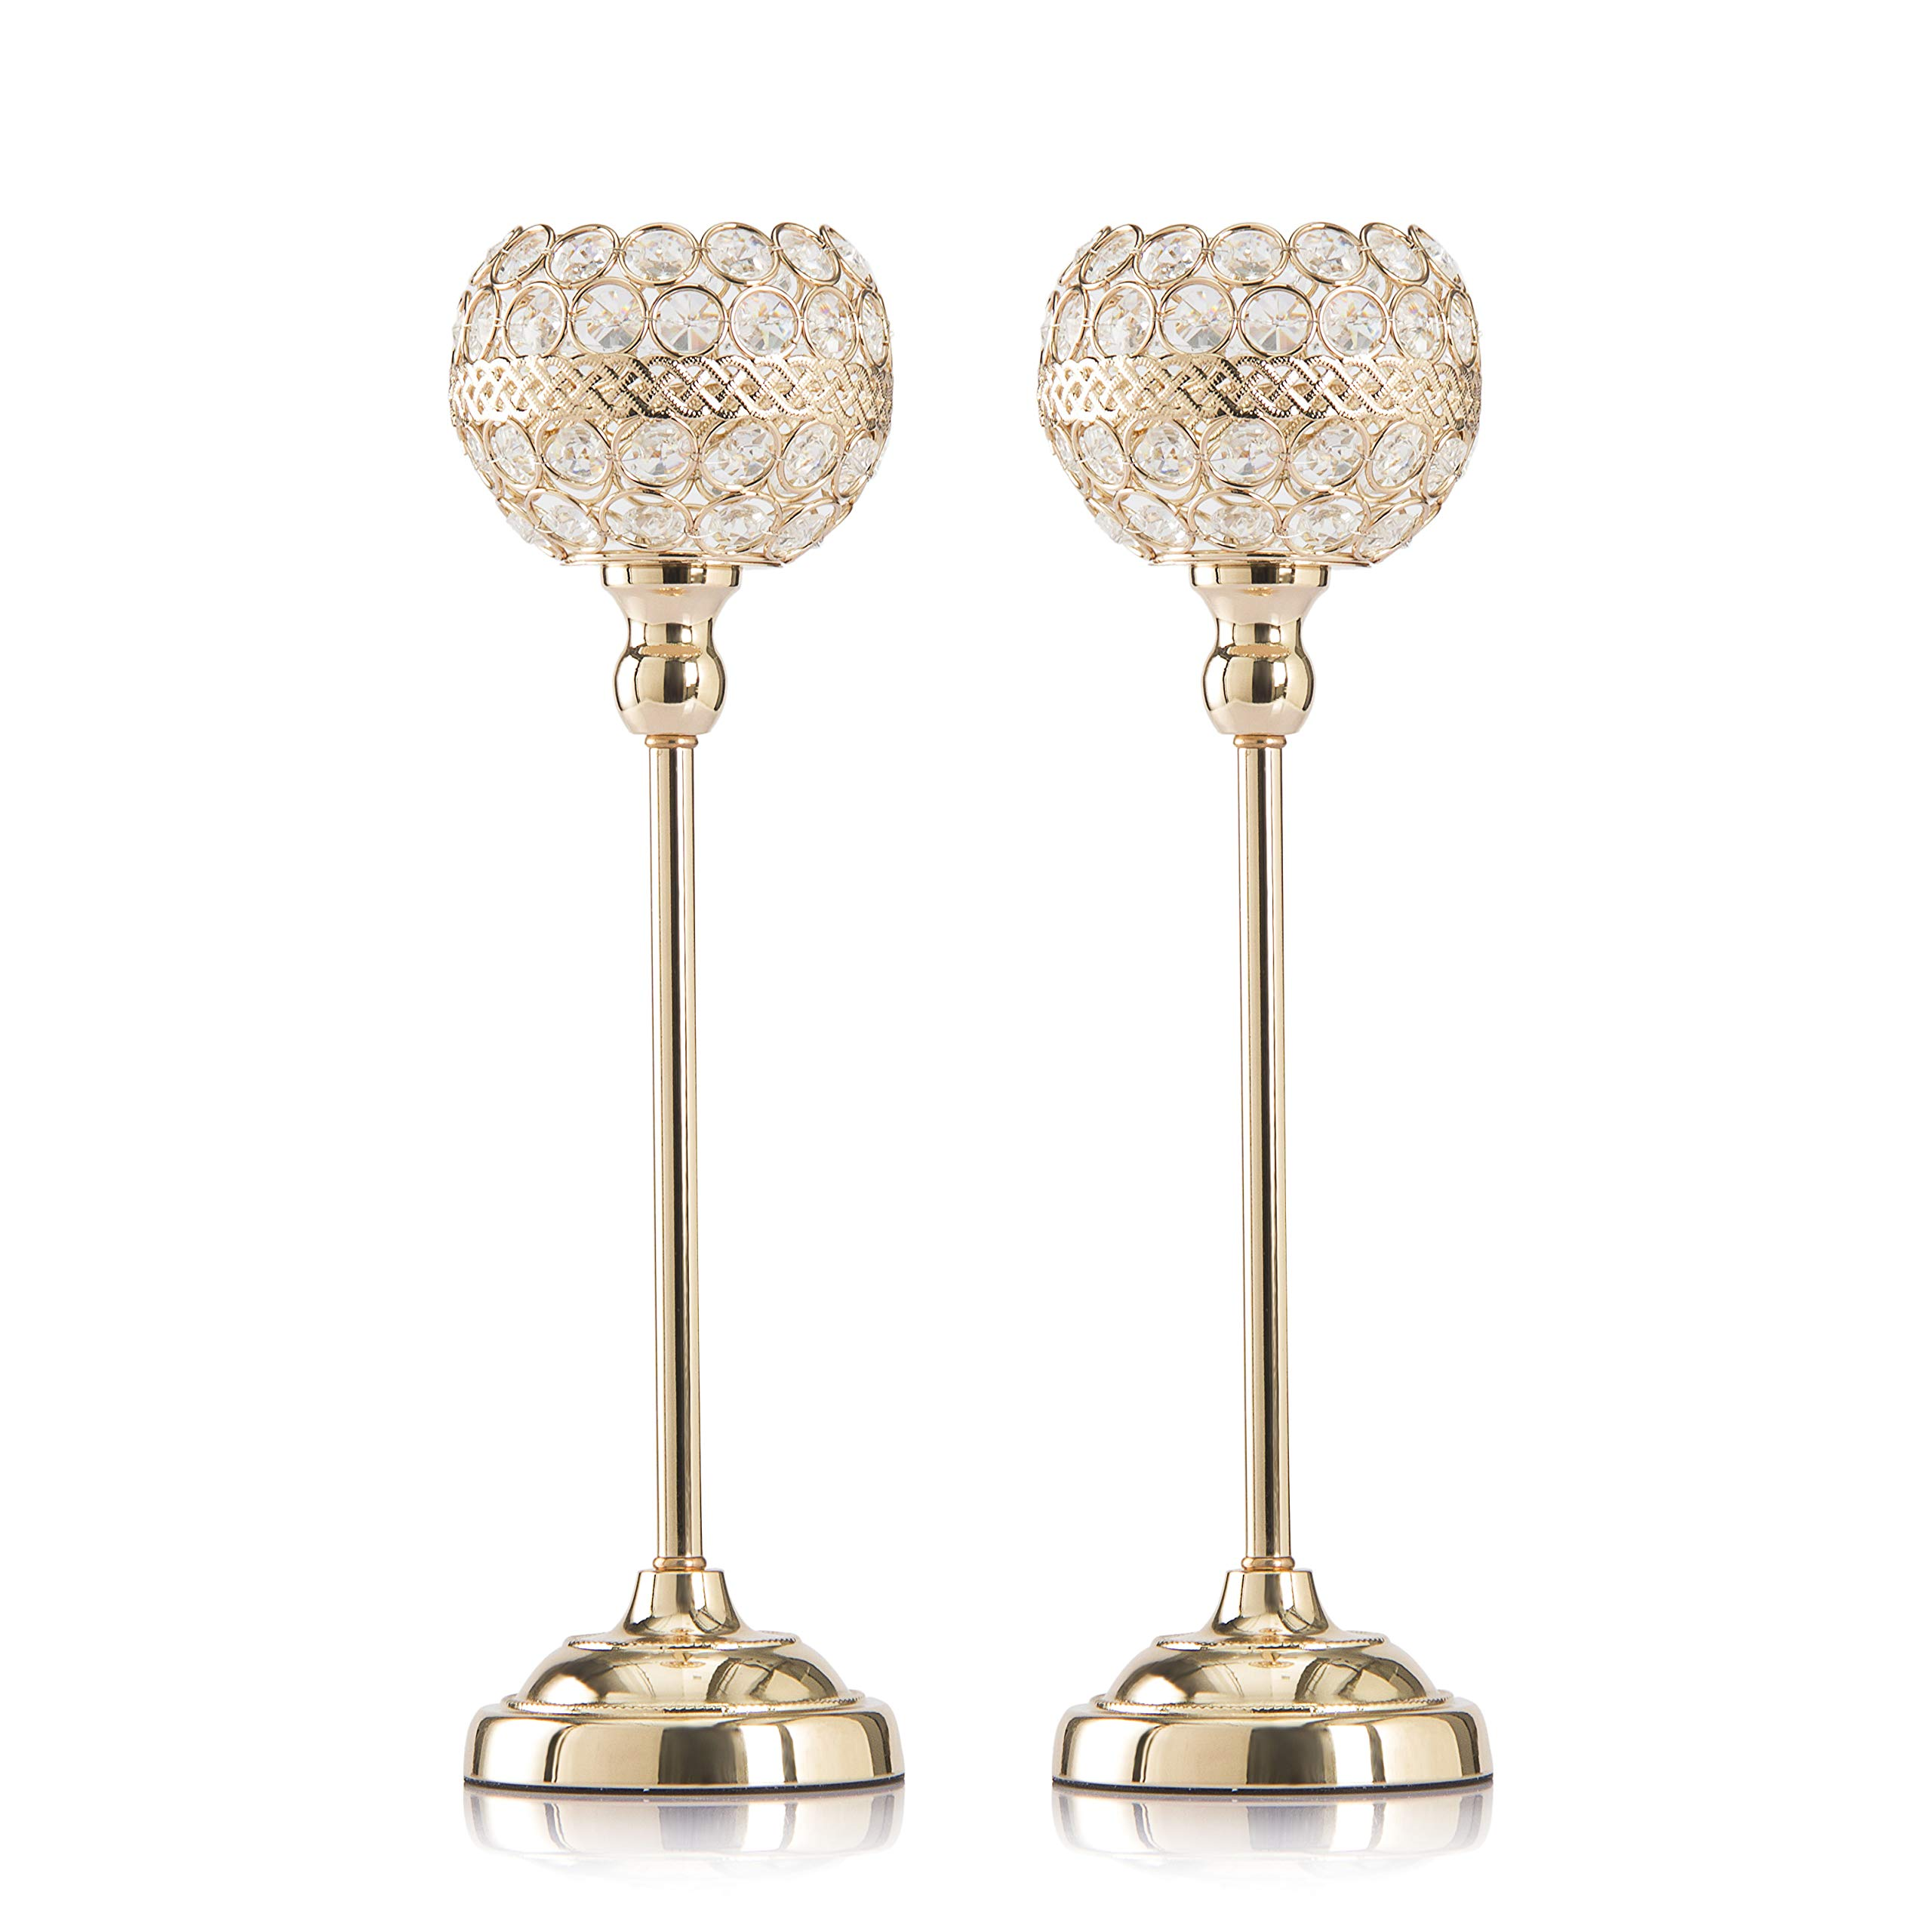 Skyera [Newest 2019] Gold Crystal Candle Holders, Dining Table Candlelight Home Decoration Gifts for Valentines Day/Wedding/Thanksgiving/Birthday/Housewarming (2 Pack) (15 inch)